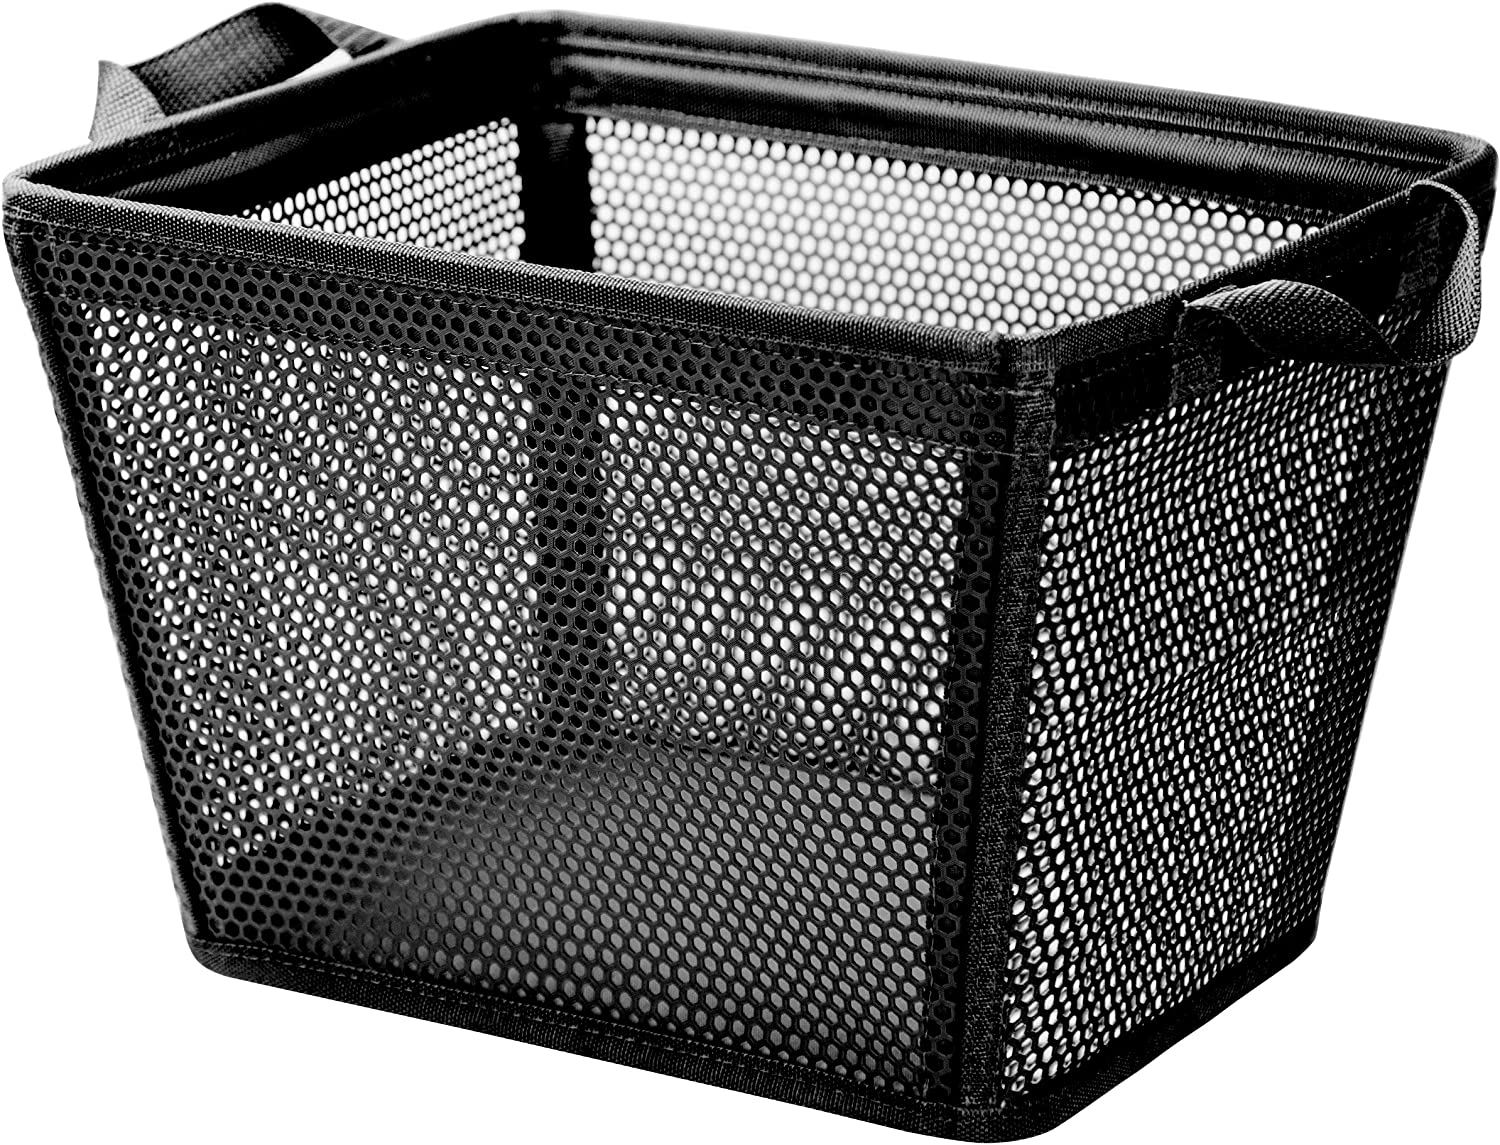 mambabydad Collapsible Laundry Hamper, EVA Plastic Storage Laundry Basket with Dual Handles (Rectangle-27L, Black)